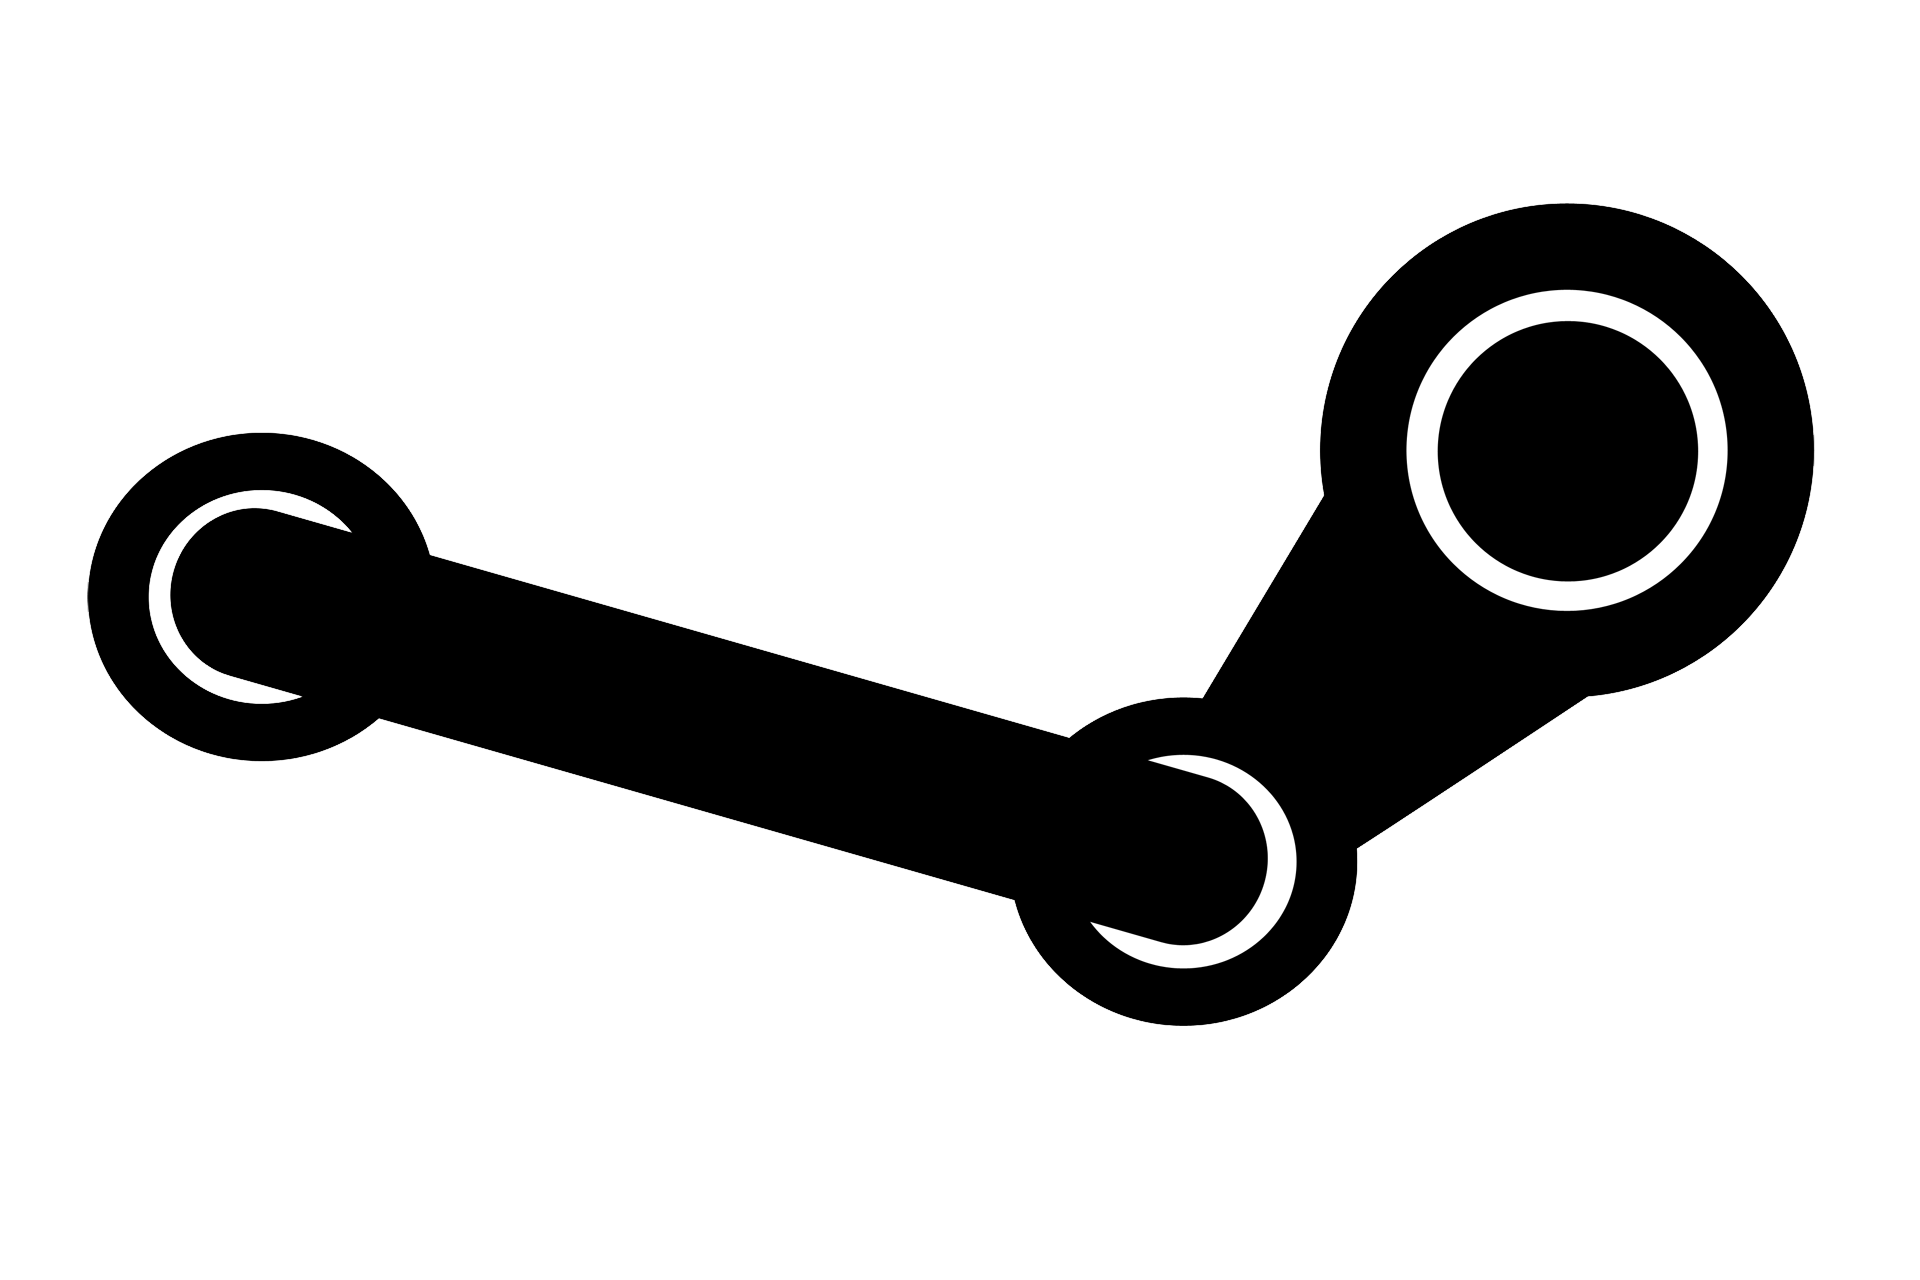 Steam Sales Leaked! - 2013 Fall and Holiday Sale Dates Revealed!